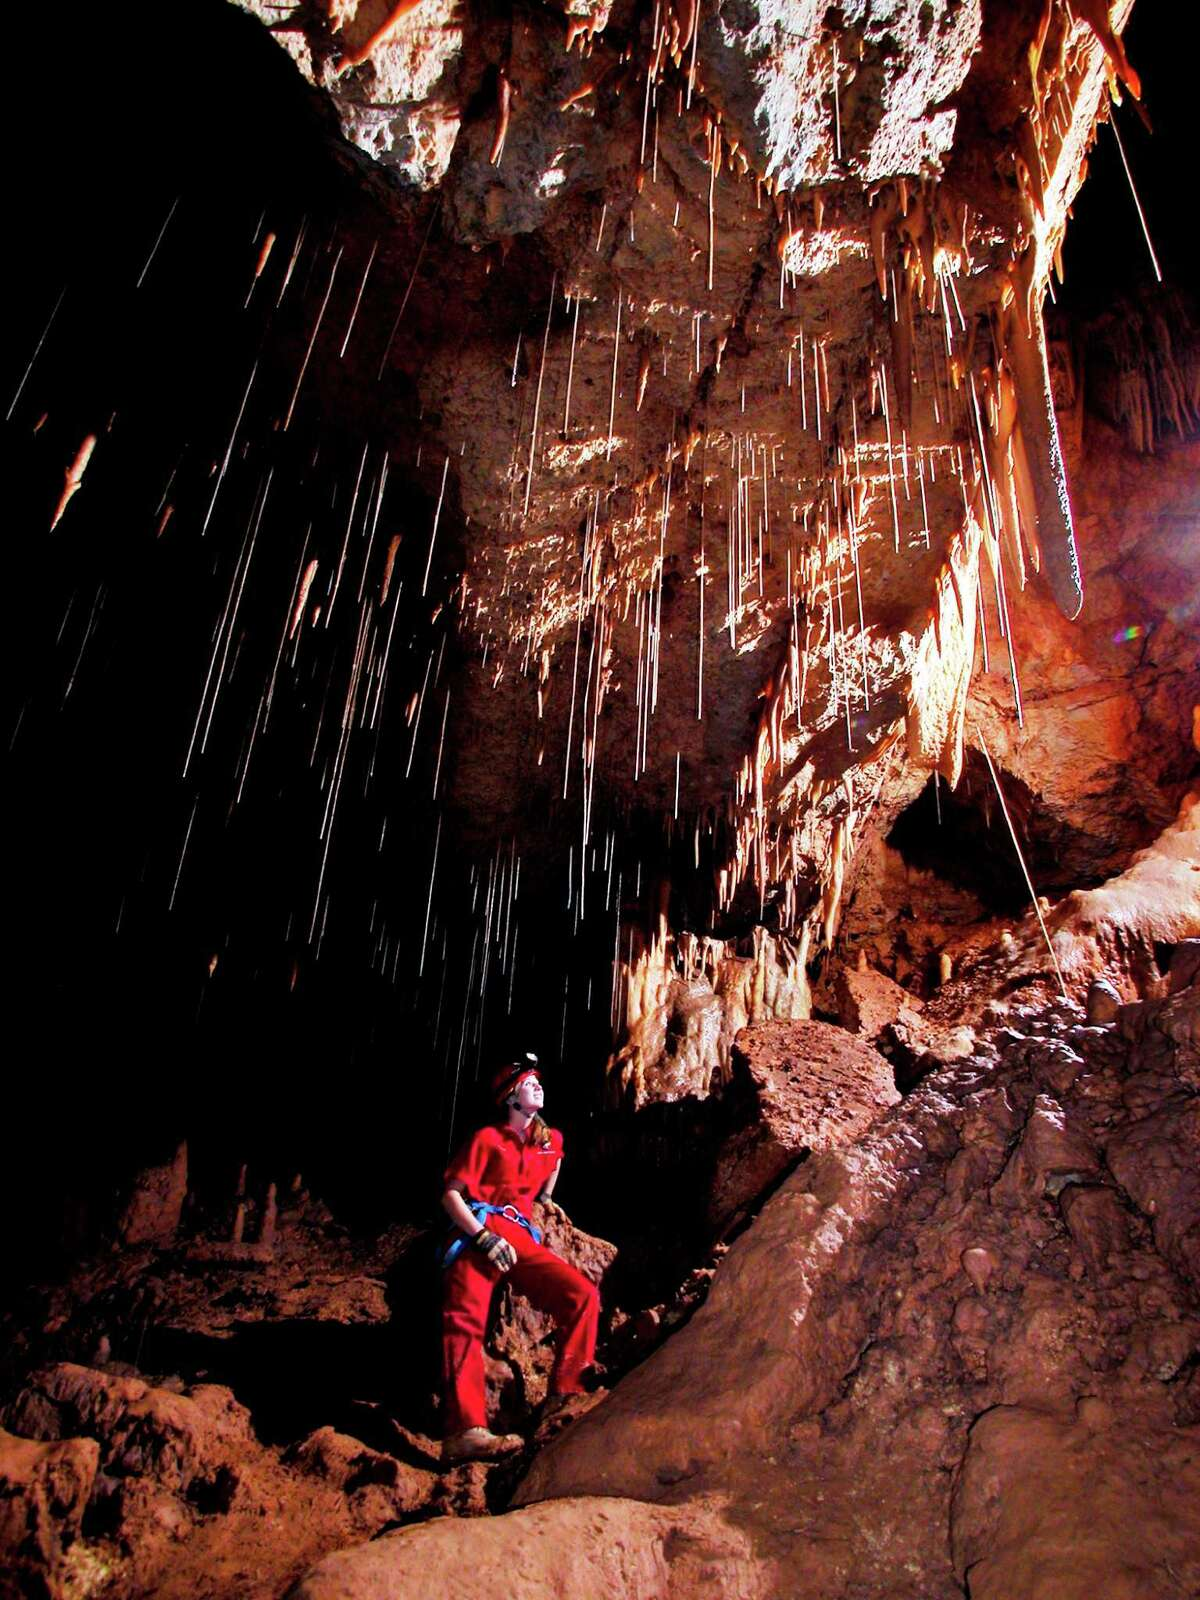 1960: The caverns were discovered by four cavers from St. Mary's University in San Antonio while exploring the area. Today, this worldclass attraction hosts more than 250,000 visitors annually.